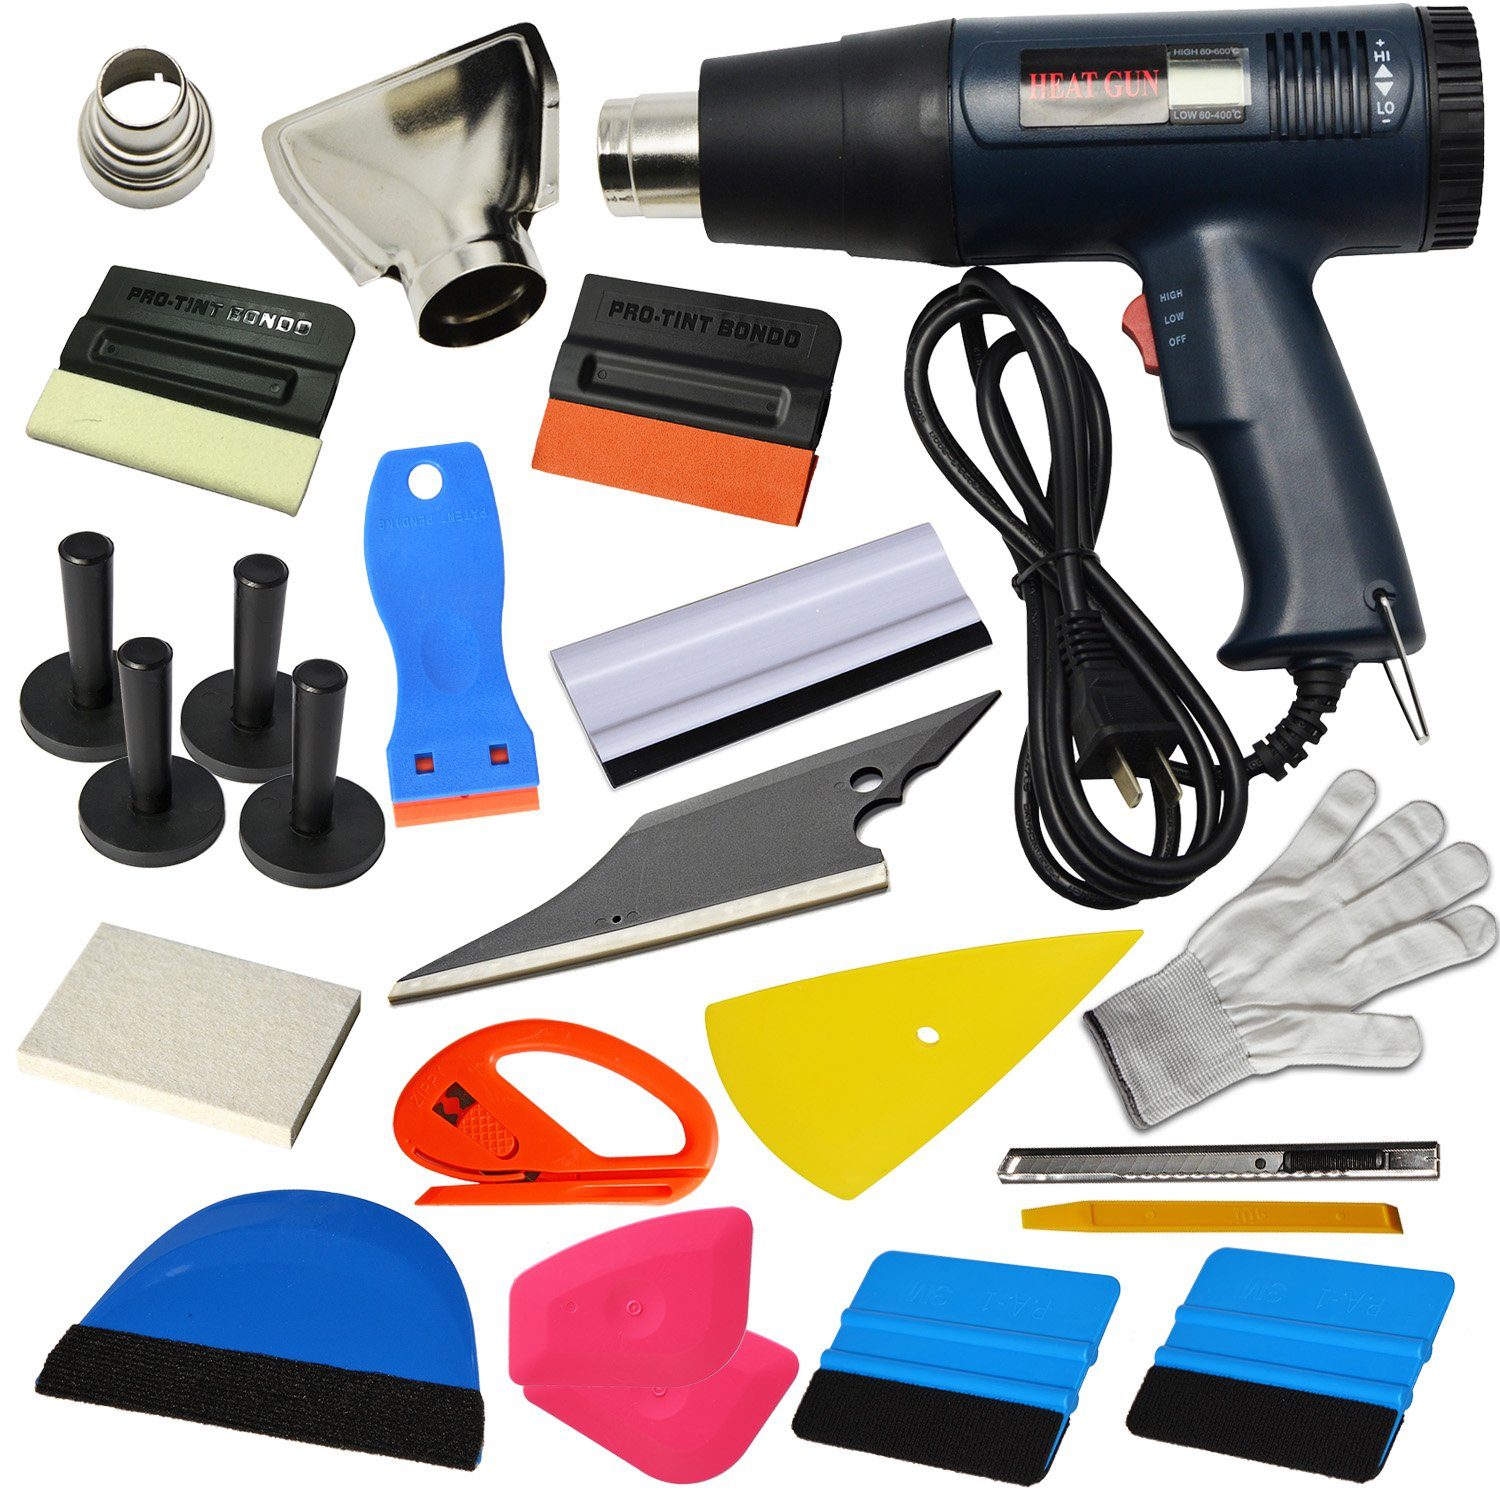 Ehdis 16 Kinds of Car Vinyl Wrap Tool Window Tint Kit for Auto Film Tinting Set Application Installation or Removal with LCD Display Heat Gun by Ehdis (Image #1)